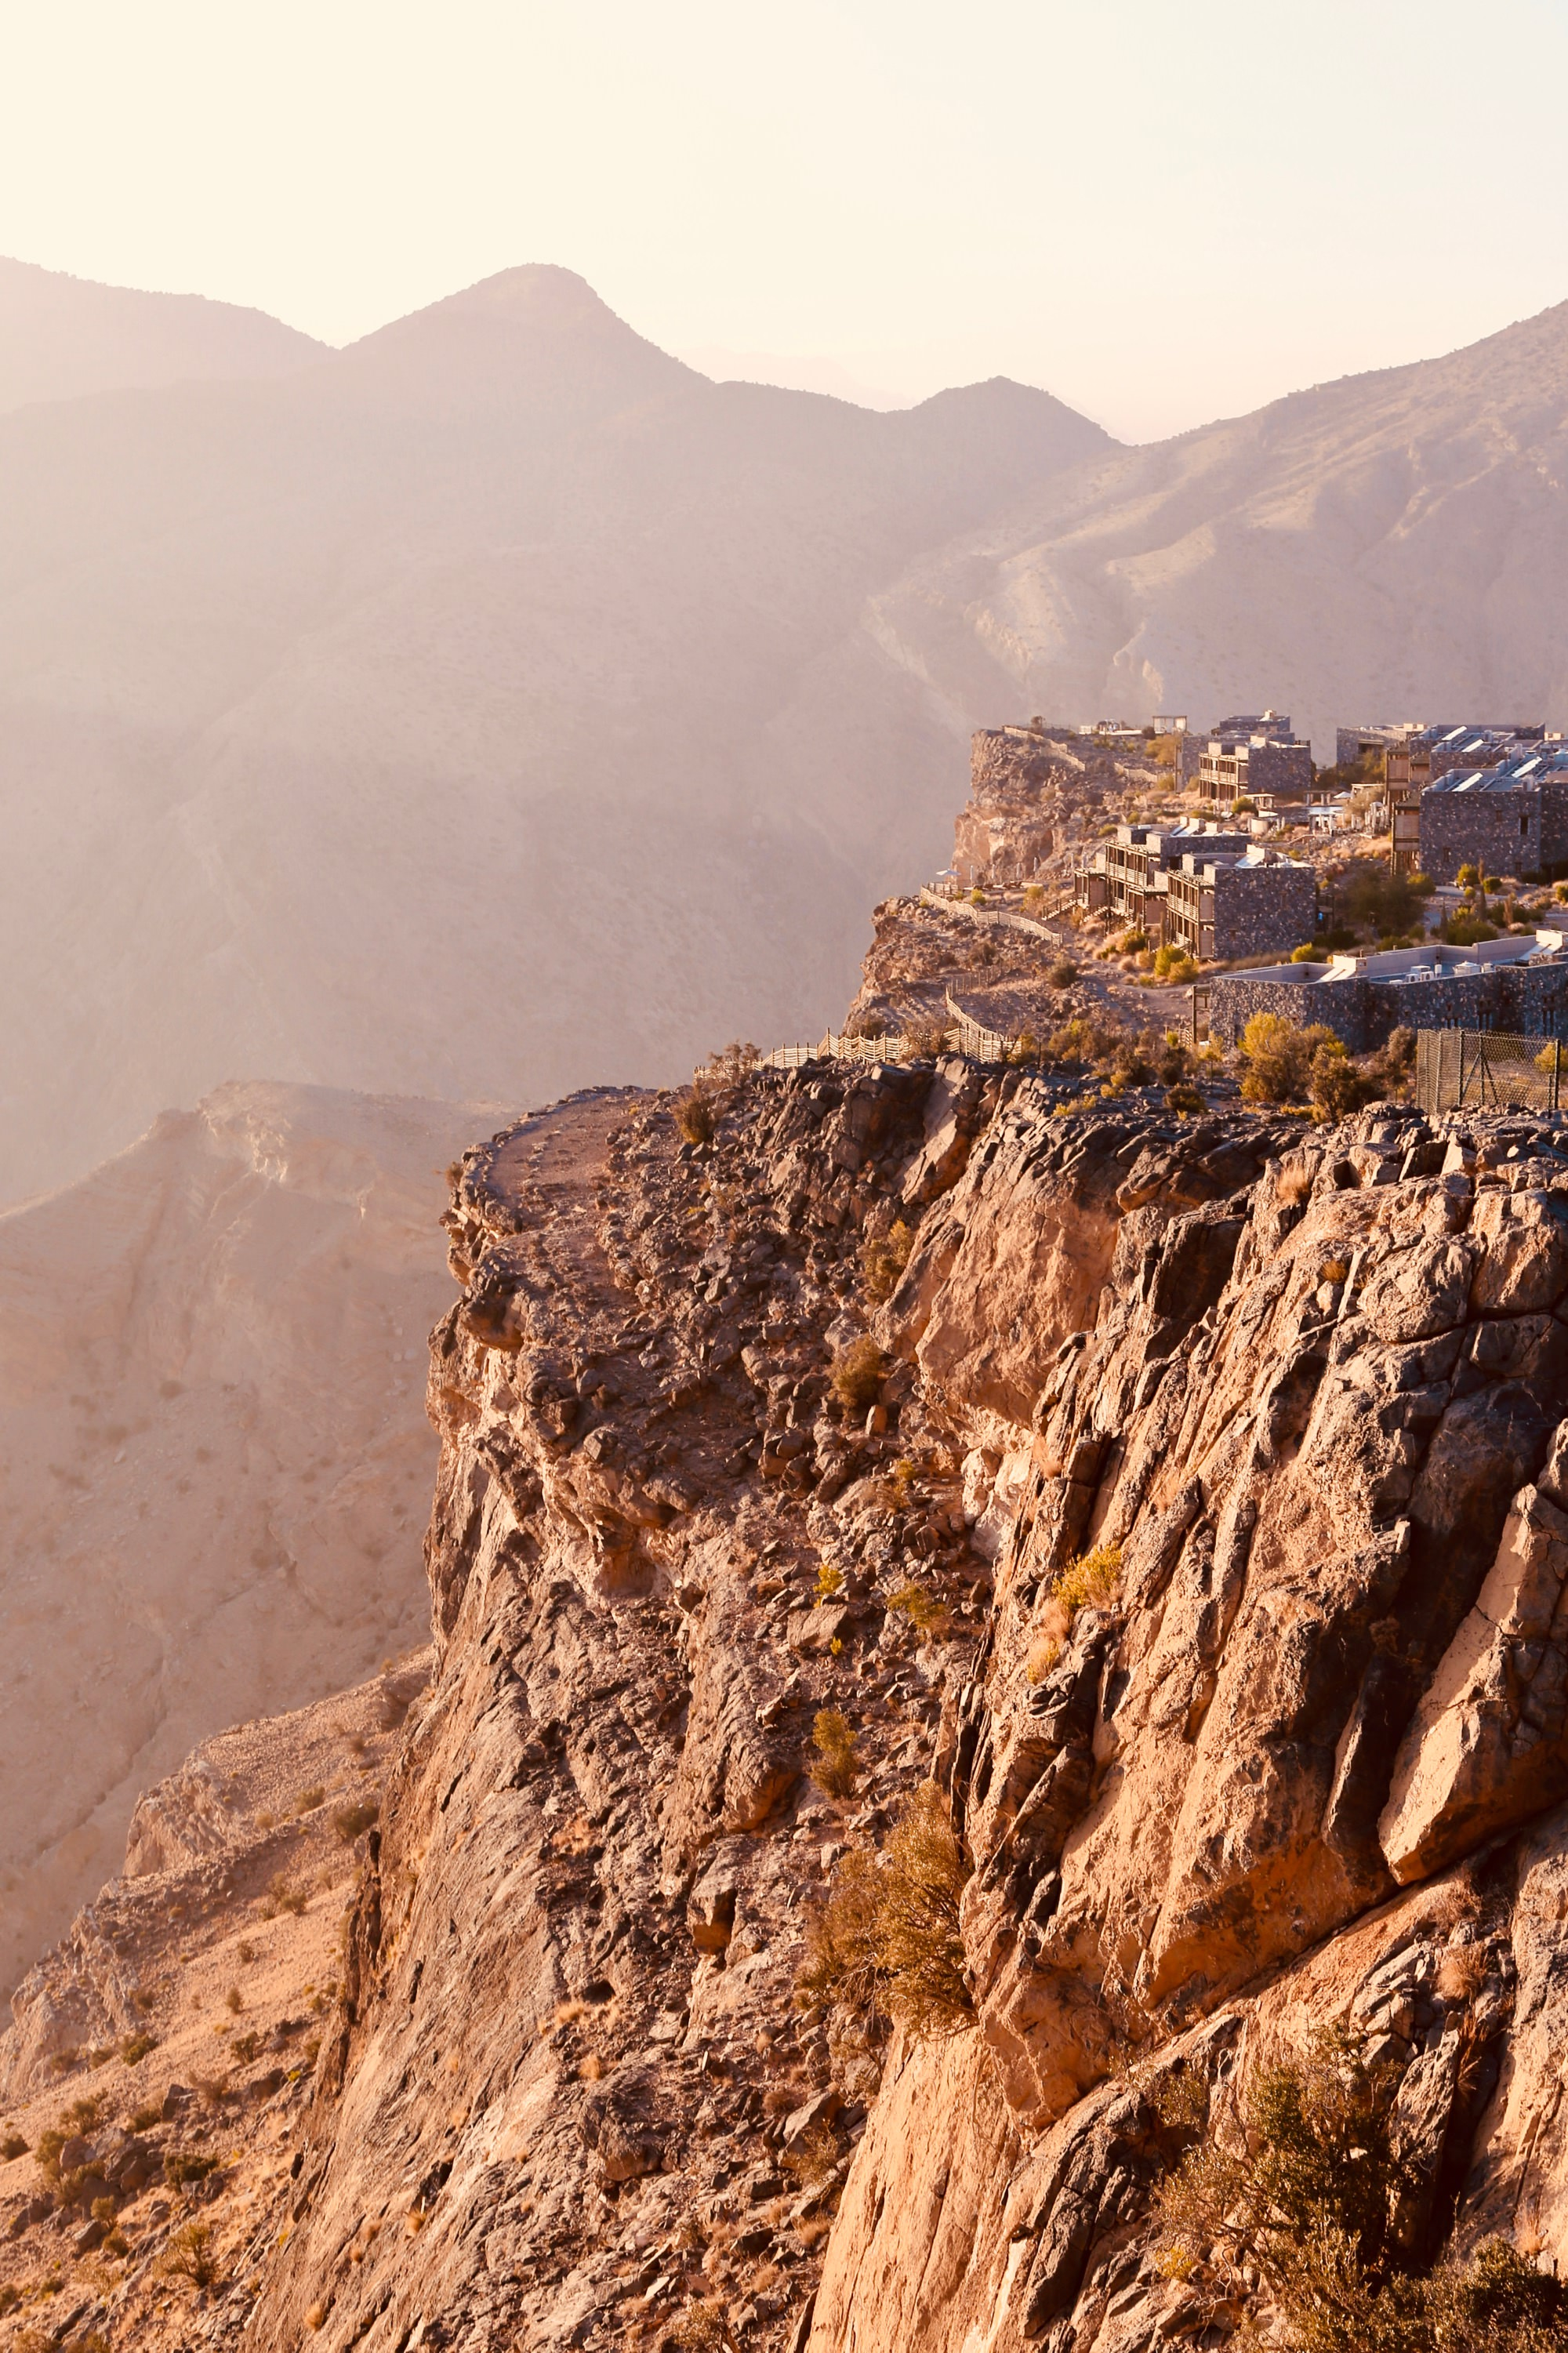 Hotte Broan Ilot Central ~ An Adventure Hotel Perched On The Edge Of A Canyon You Should Go Here